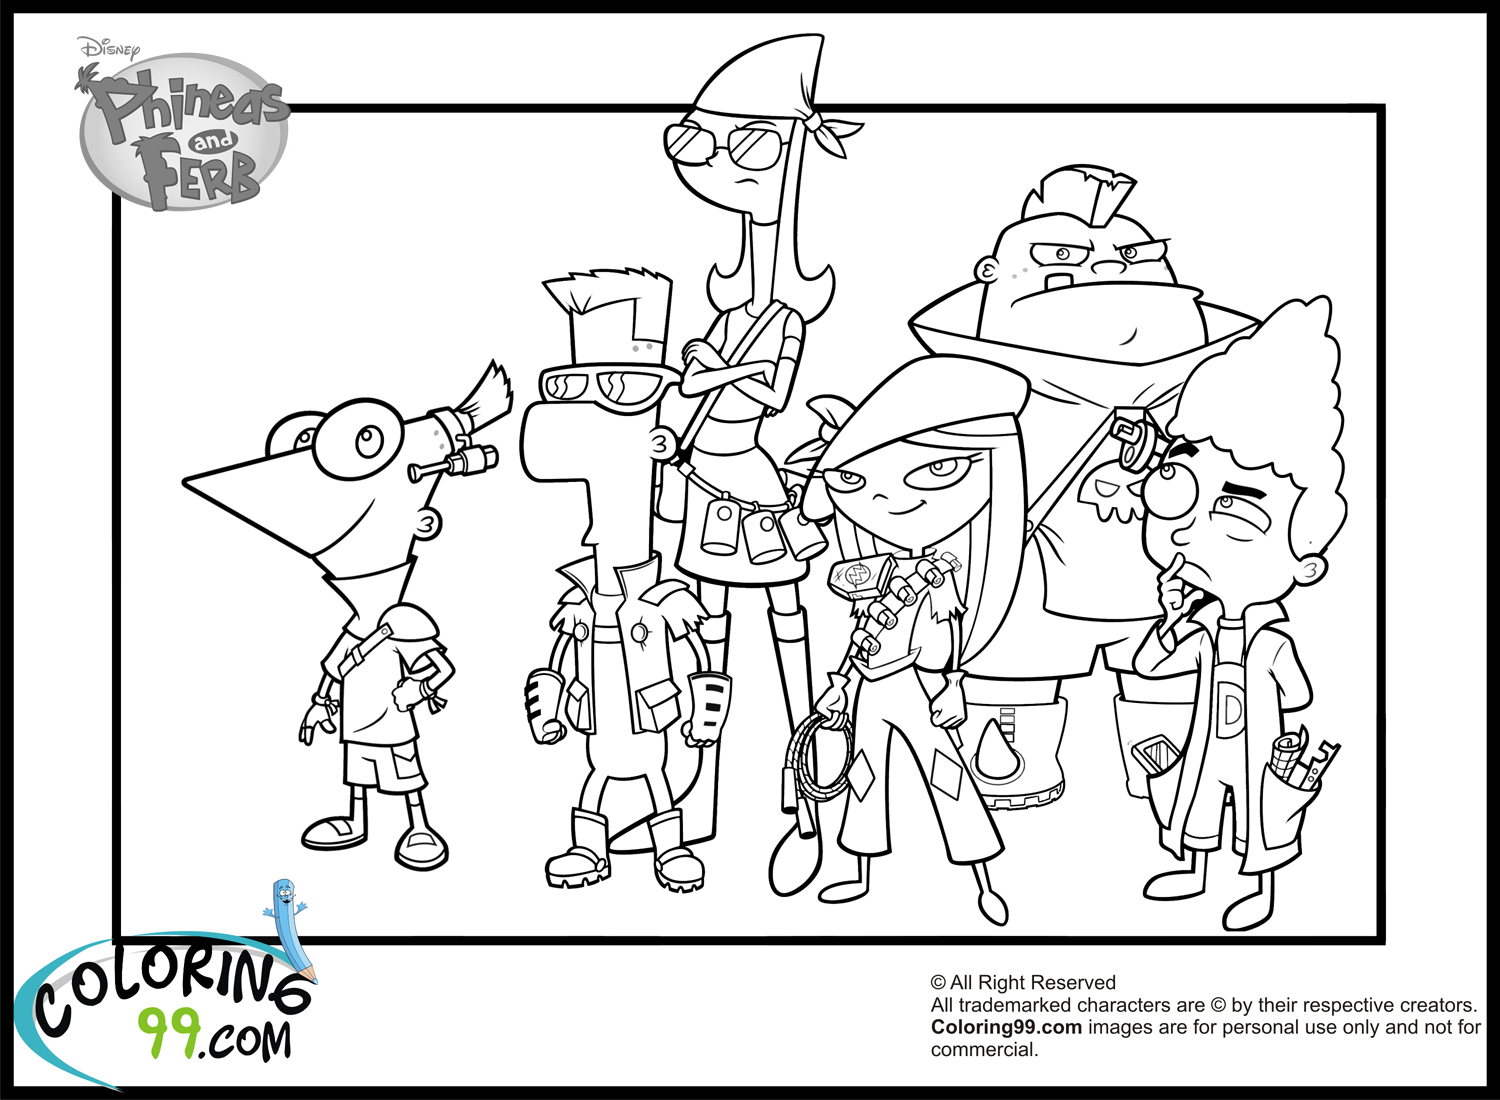 phineas and ferb characters coloring pages - Phineas And Ferb Colouring Pages